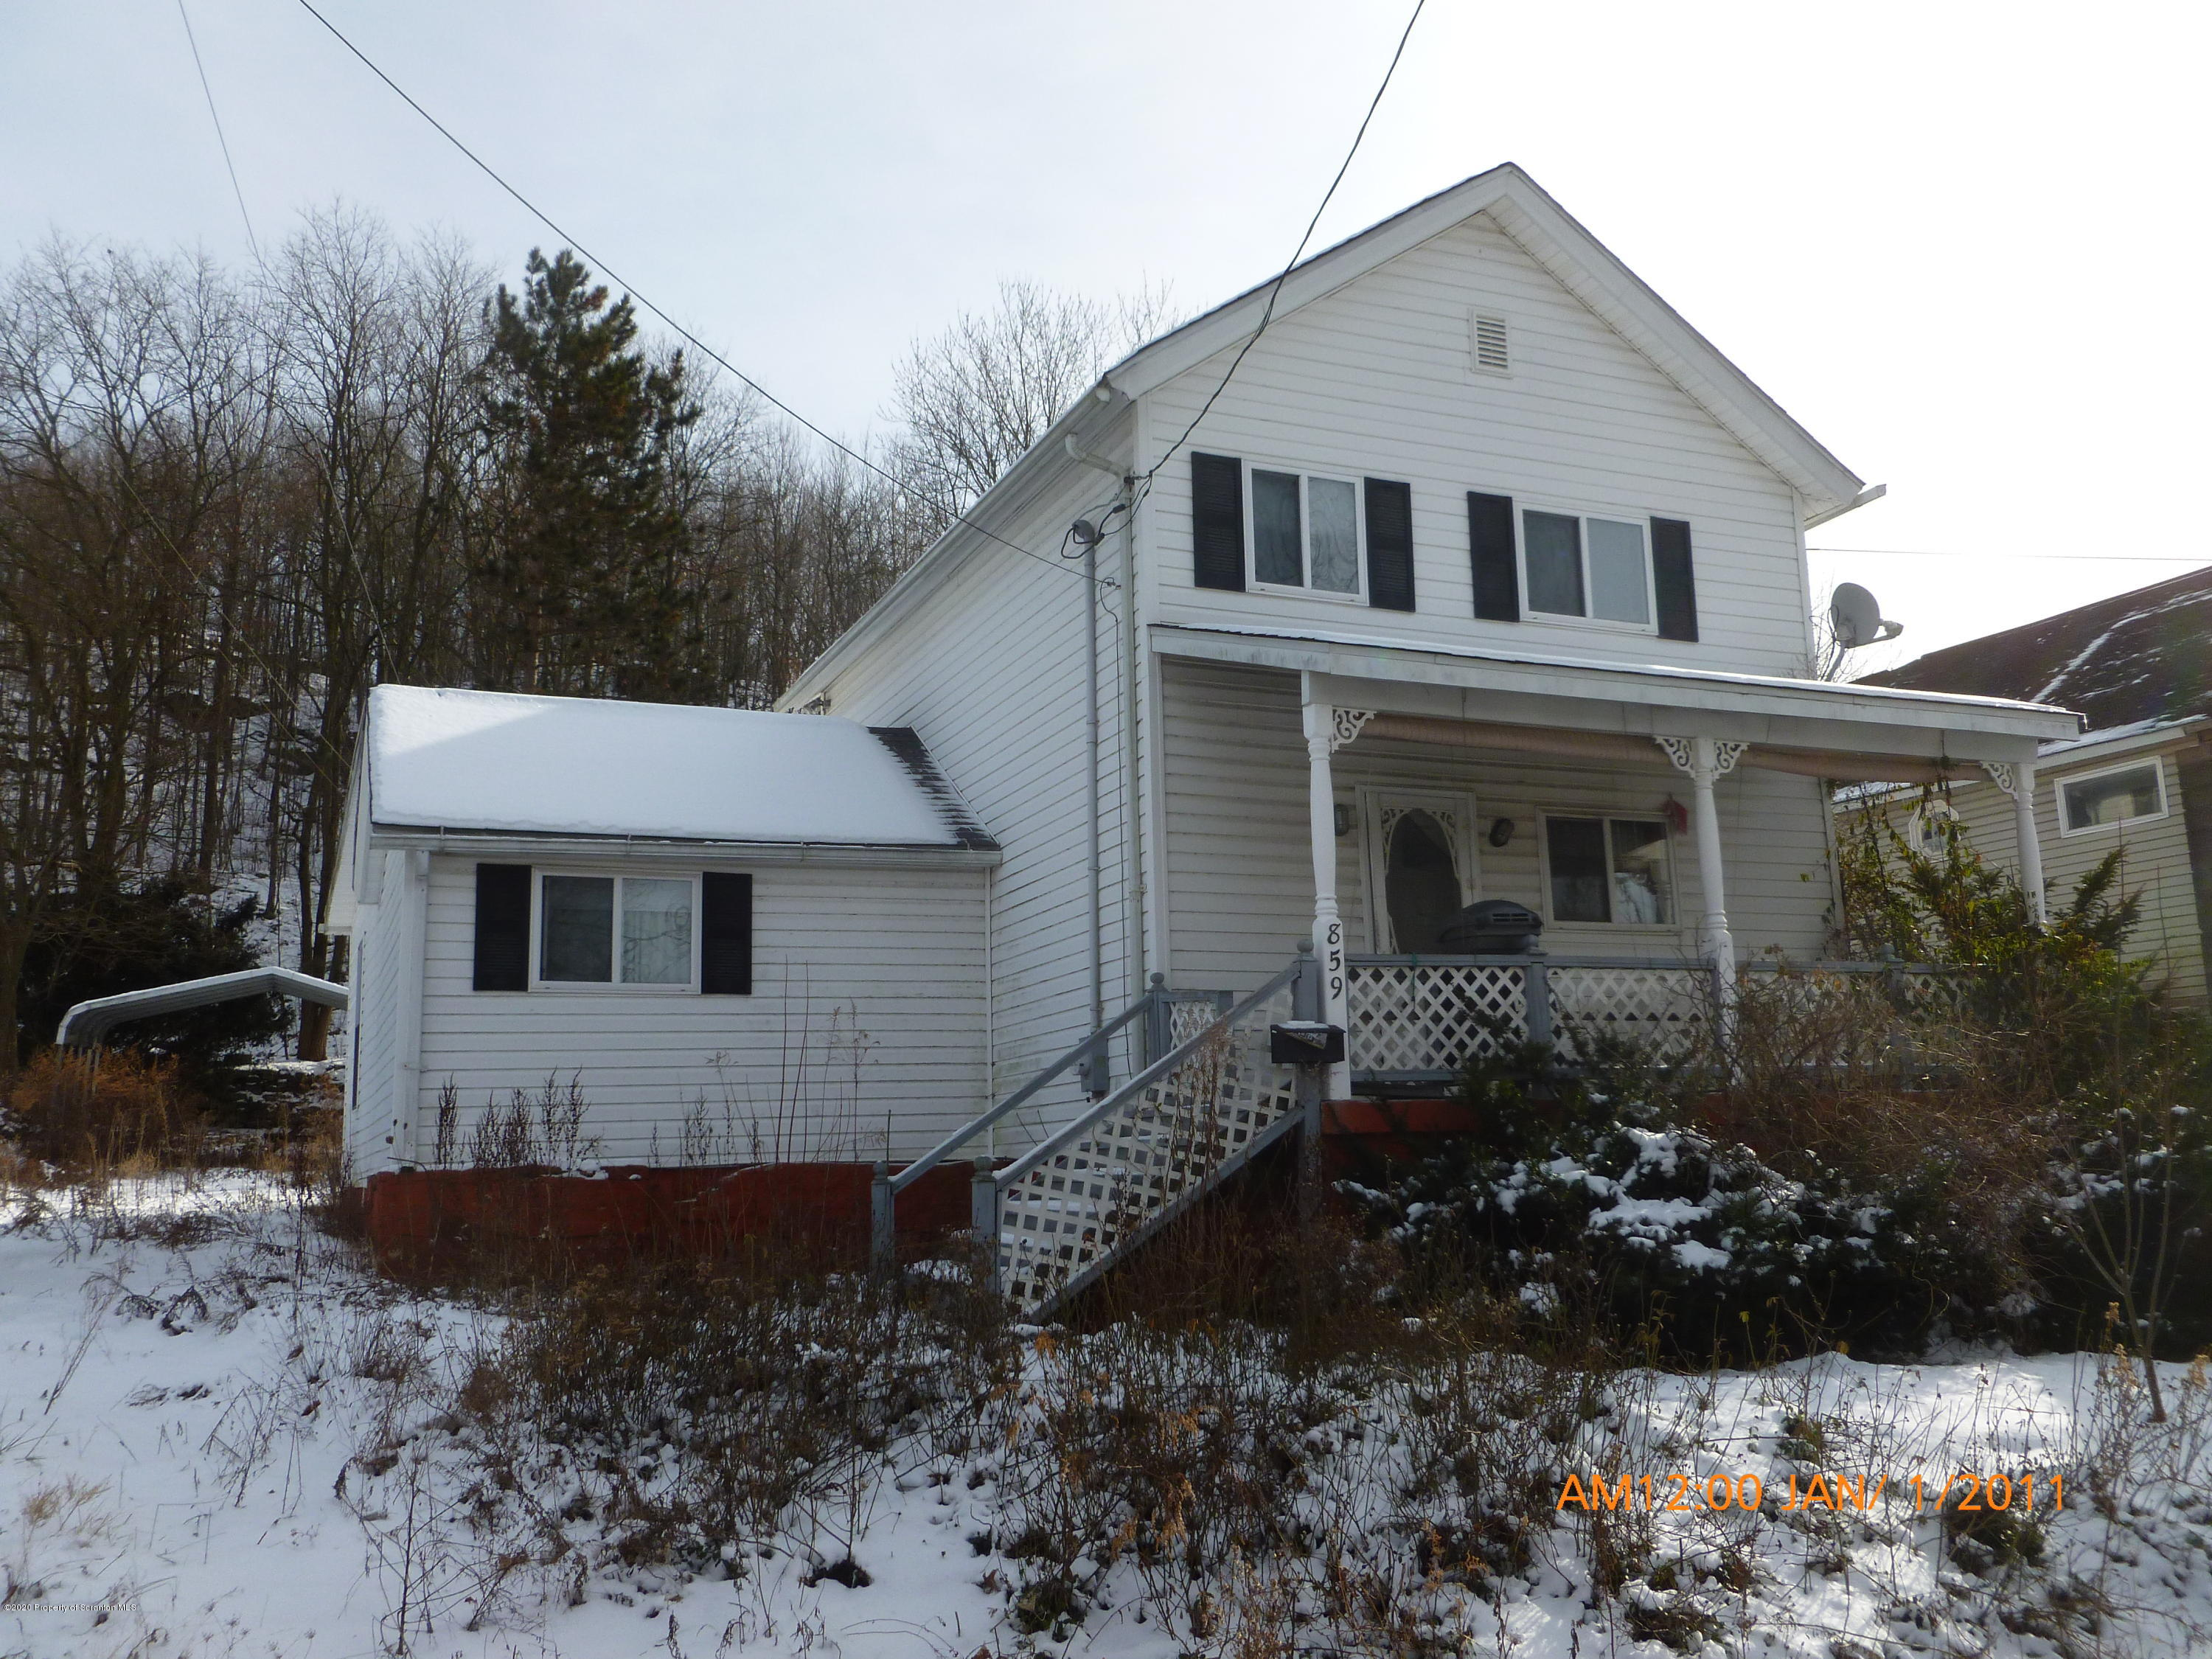 859 Hill St, Archbald, Pennsylvania 18403, 3 Bedrooms Bedrooms, 5 Rooms Rooms,1 BathroomBathrooms,Single Family,For Sale,Hill,20-161